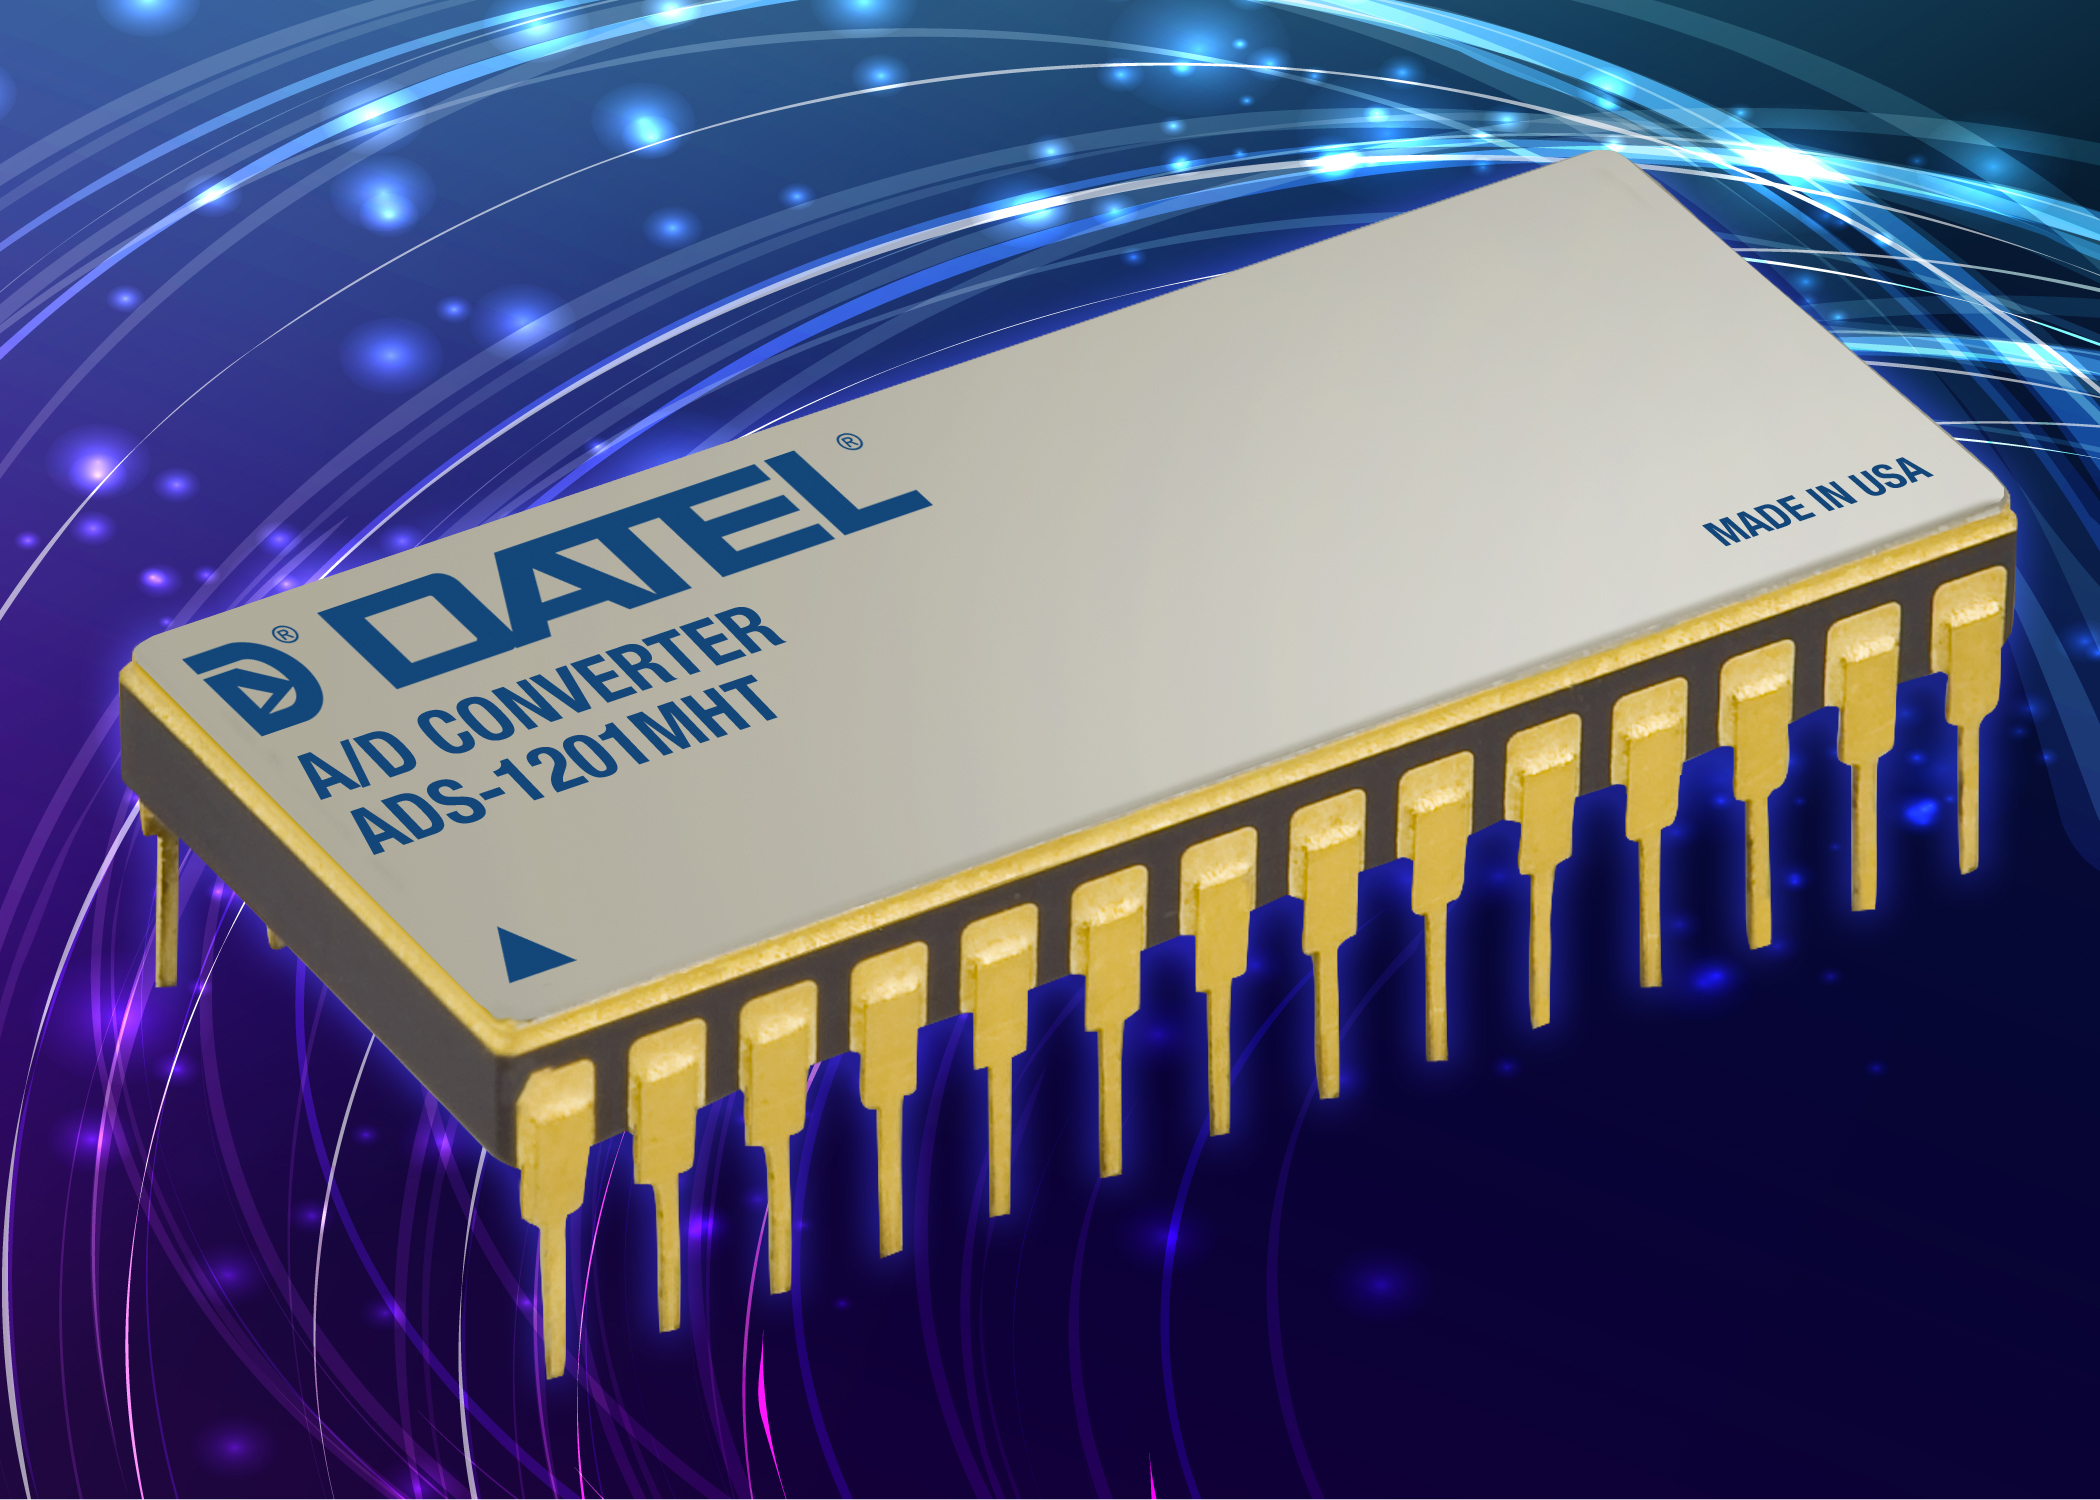 New Products News Datel Data Acquisition Components Cmos Integrated Analogtodigital And Digitaltoanalog Converters Ads 1201 Analog To Digital Converter For High Temperature Applications